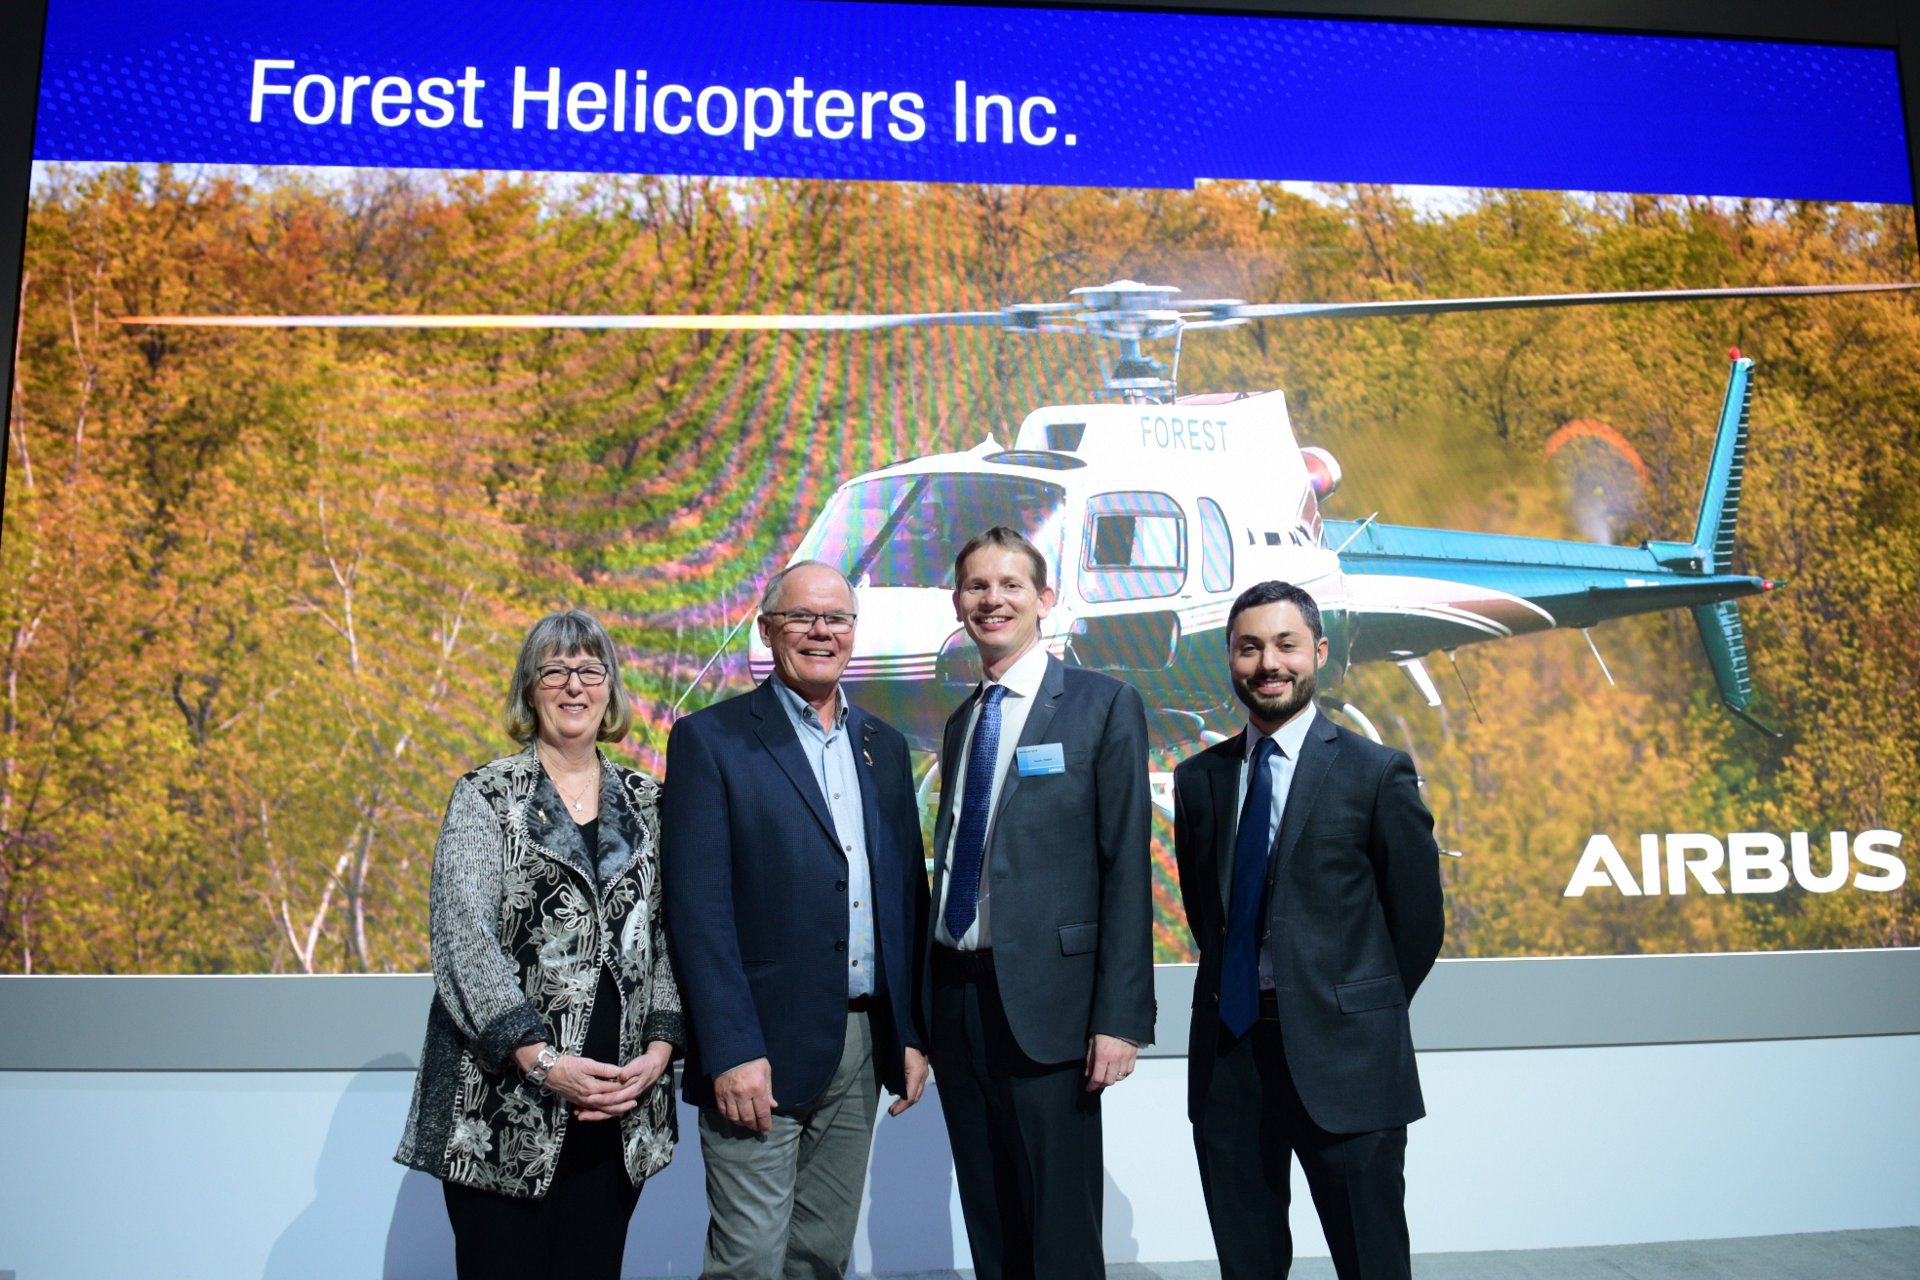 Forest Helicopters Inc. has signed an order for a light single-engine H125 helicopter from Airbus Helicopters Canada.